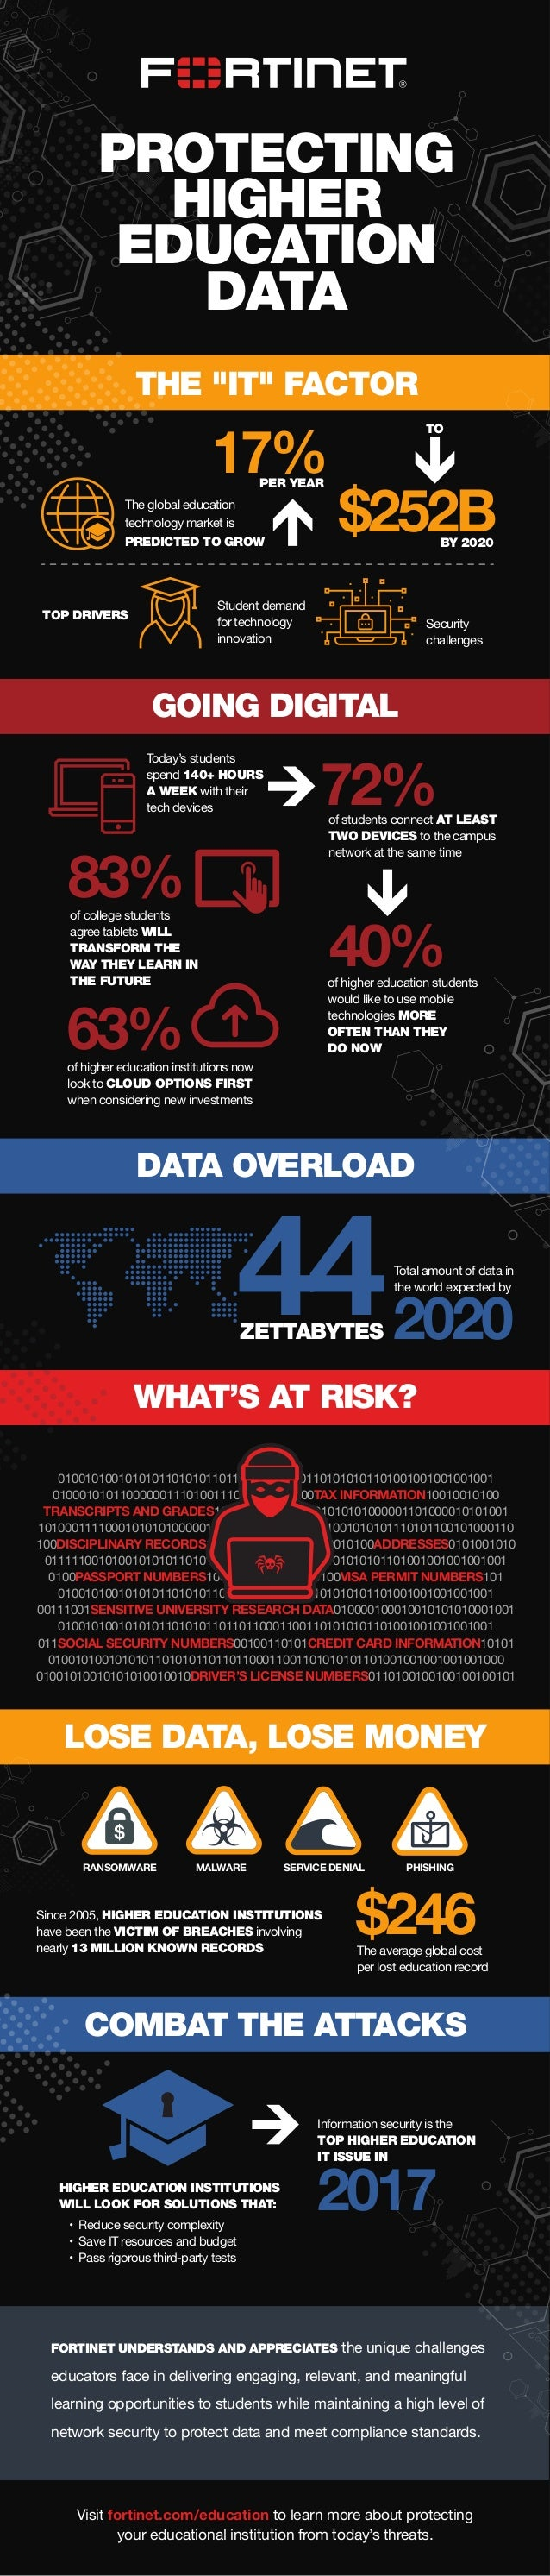 Visit fortinet.com/education to learn more about protecting your educational institution from today's threats. Since 2005,...